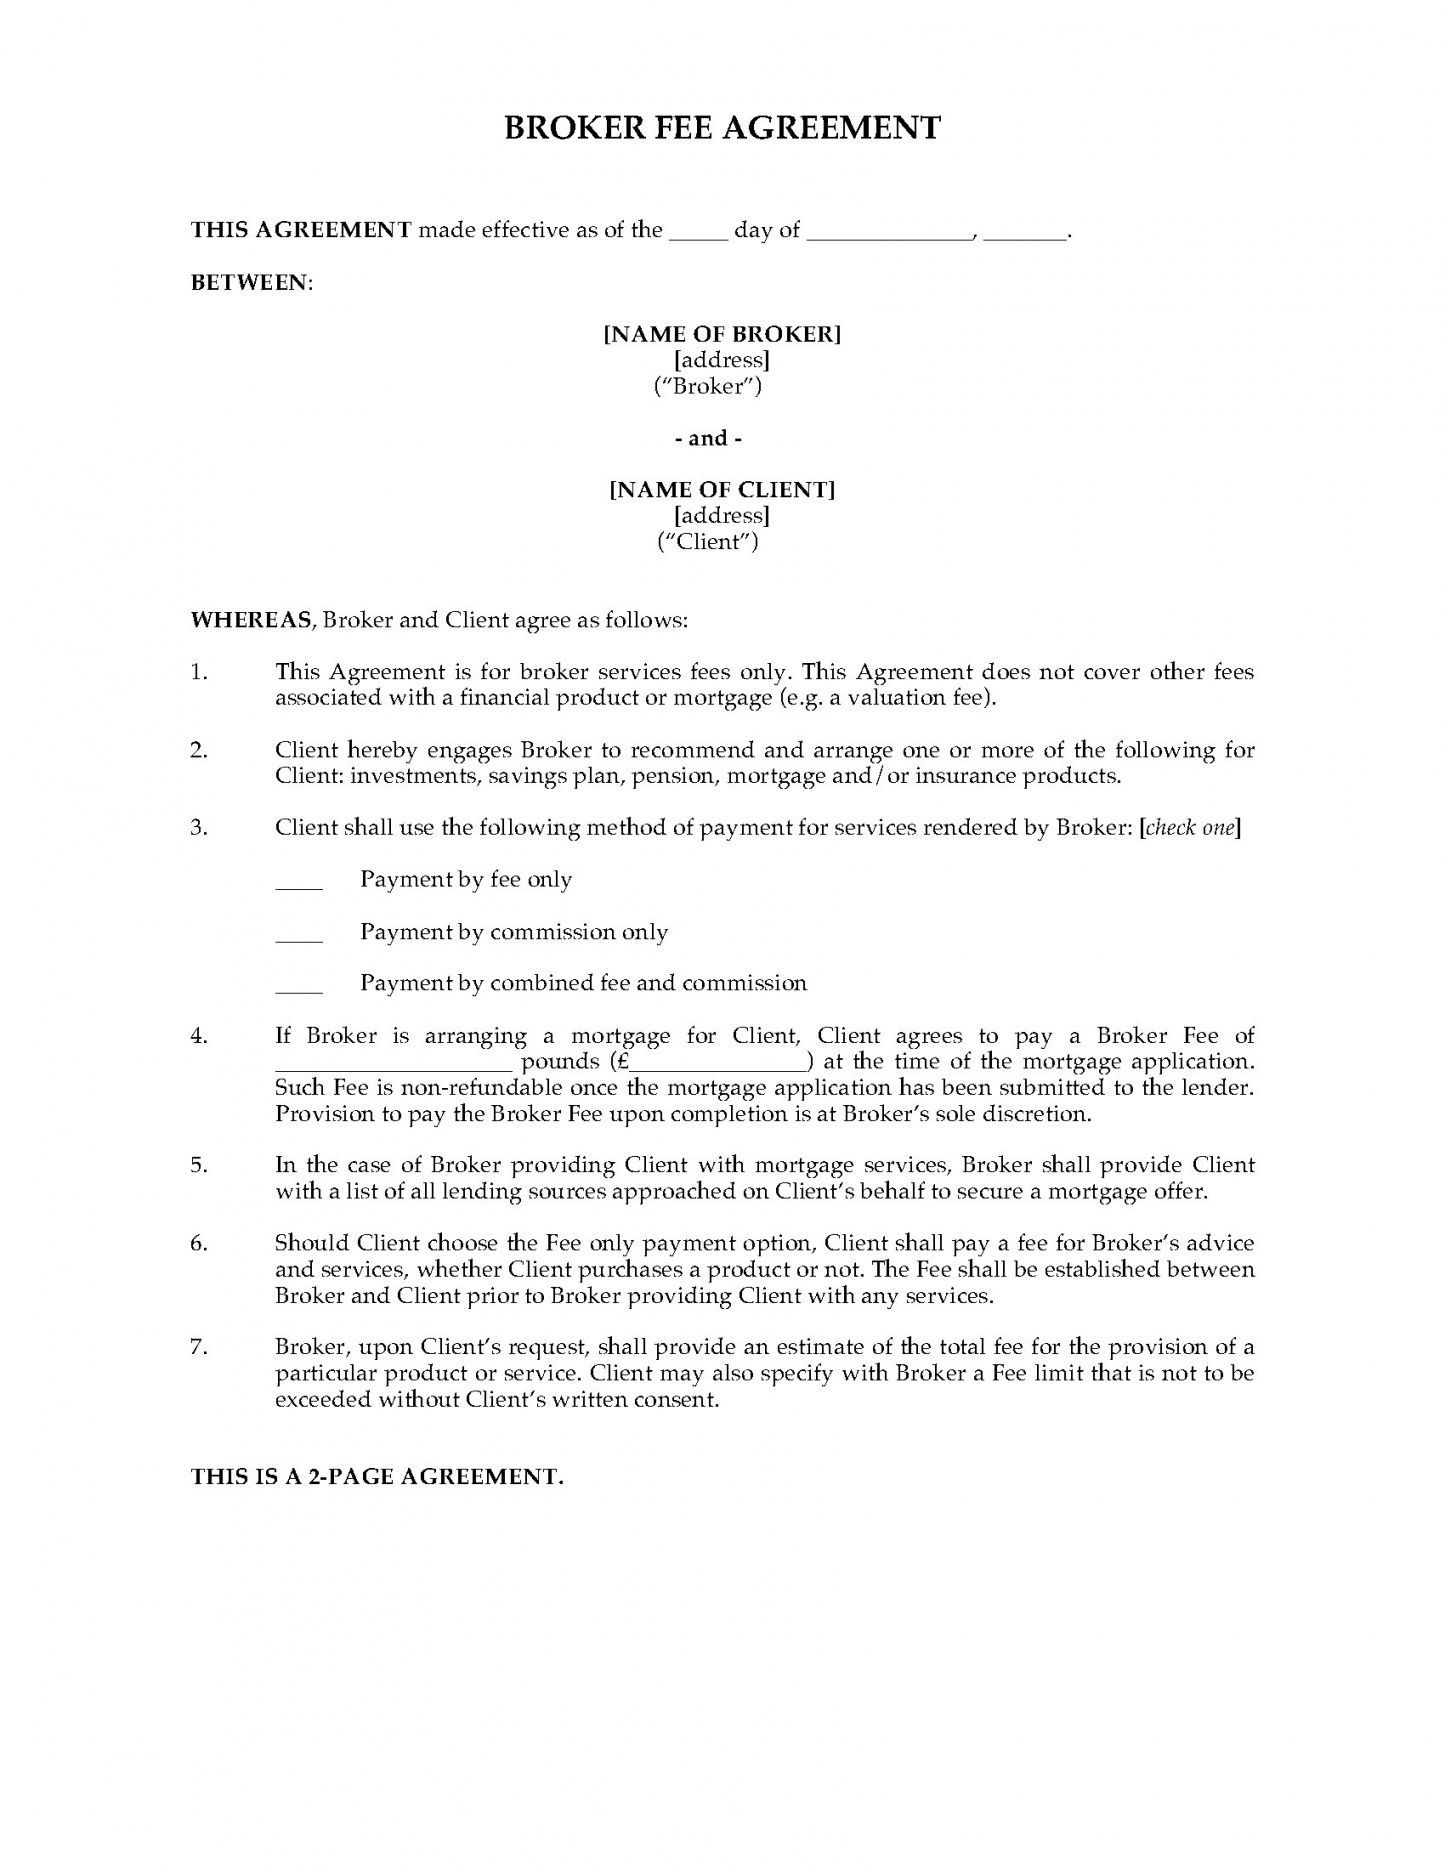 Get Our Image of Broker Fee Agreement Template in 2020